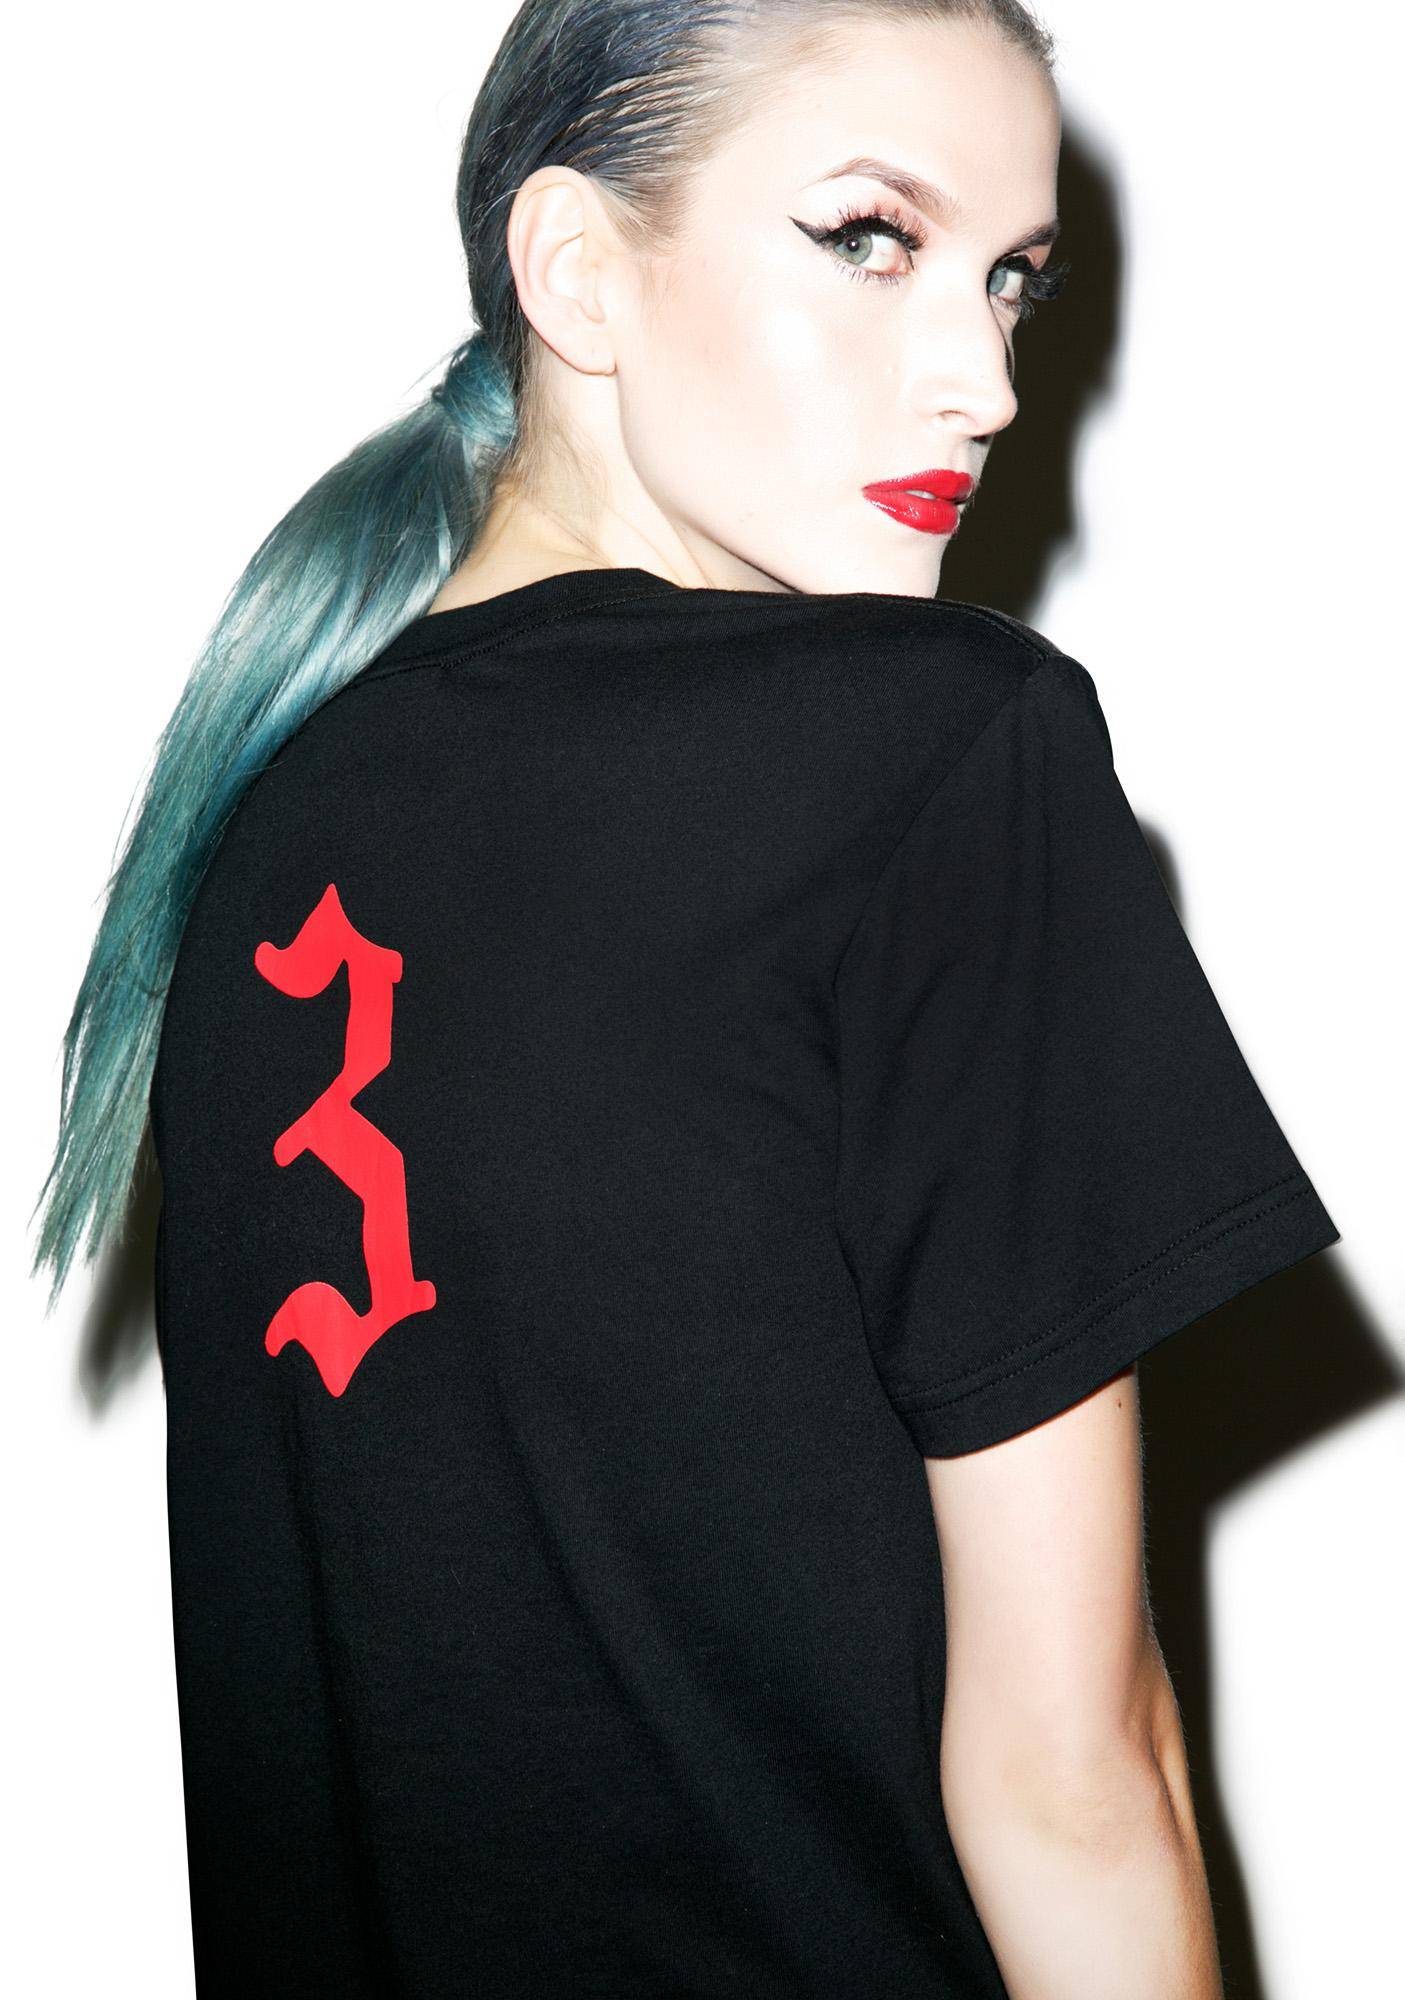 Black Scale Eve's Rib T-Shirt